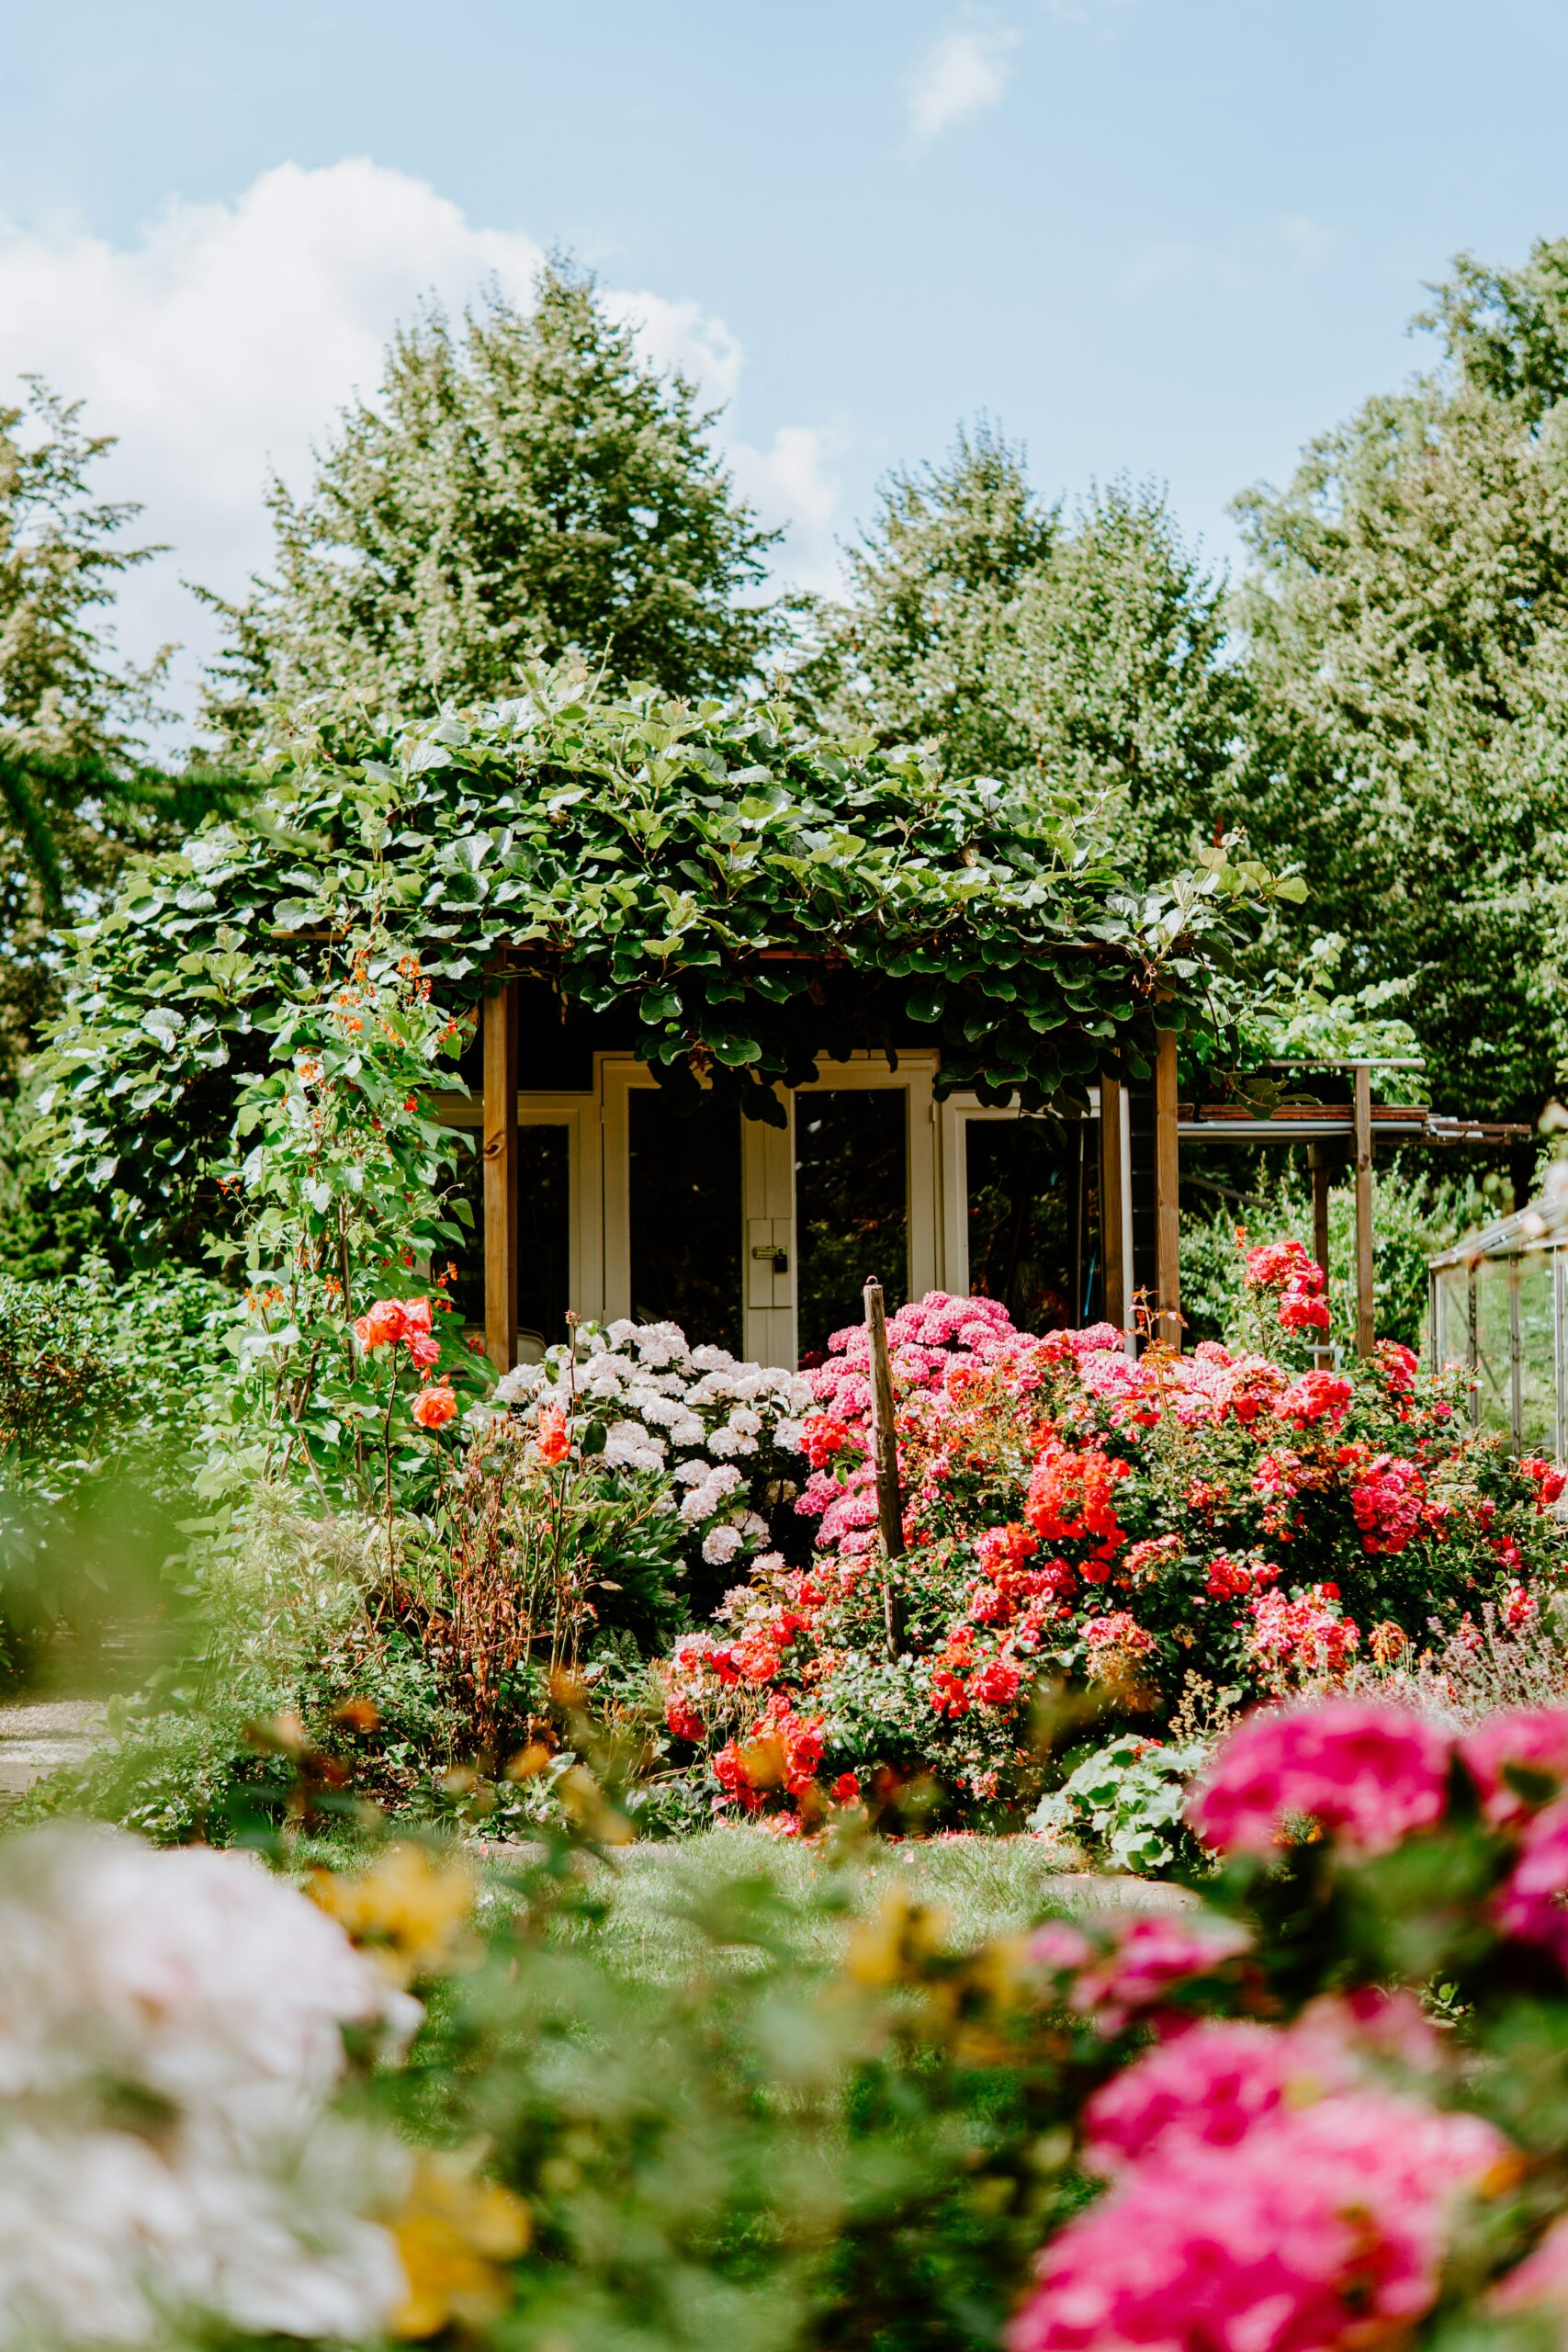 A house covered in plants and flowers